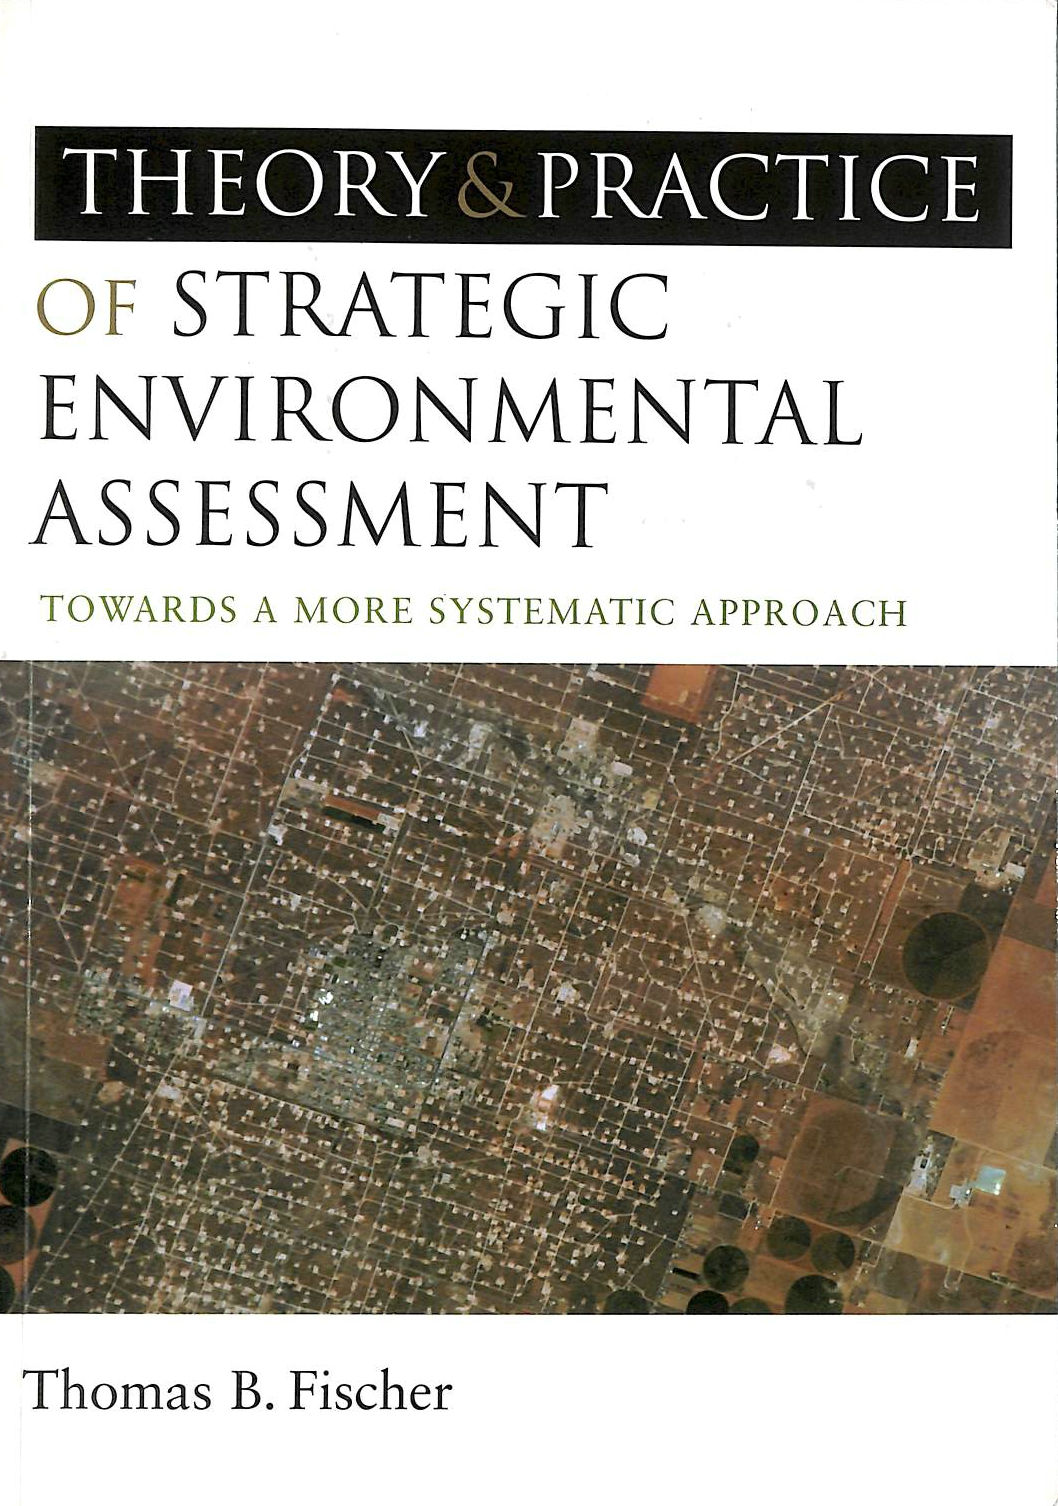 Image for The Theory and Practice of Strategic Environmental Assessment: Towards a More Systematic Approach